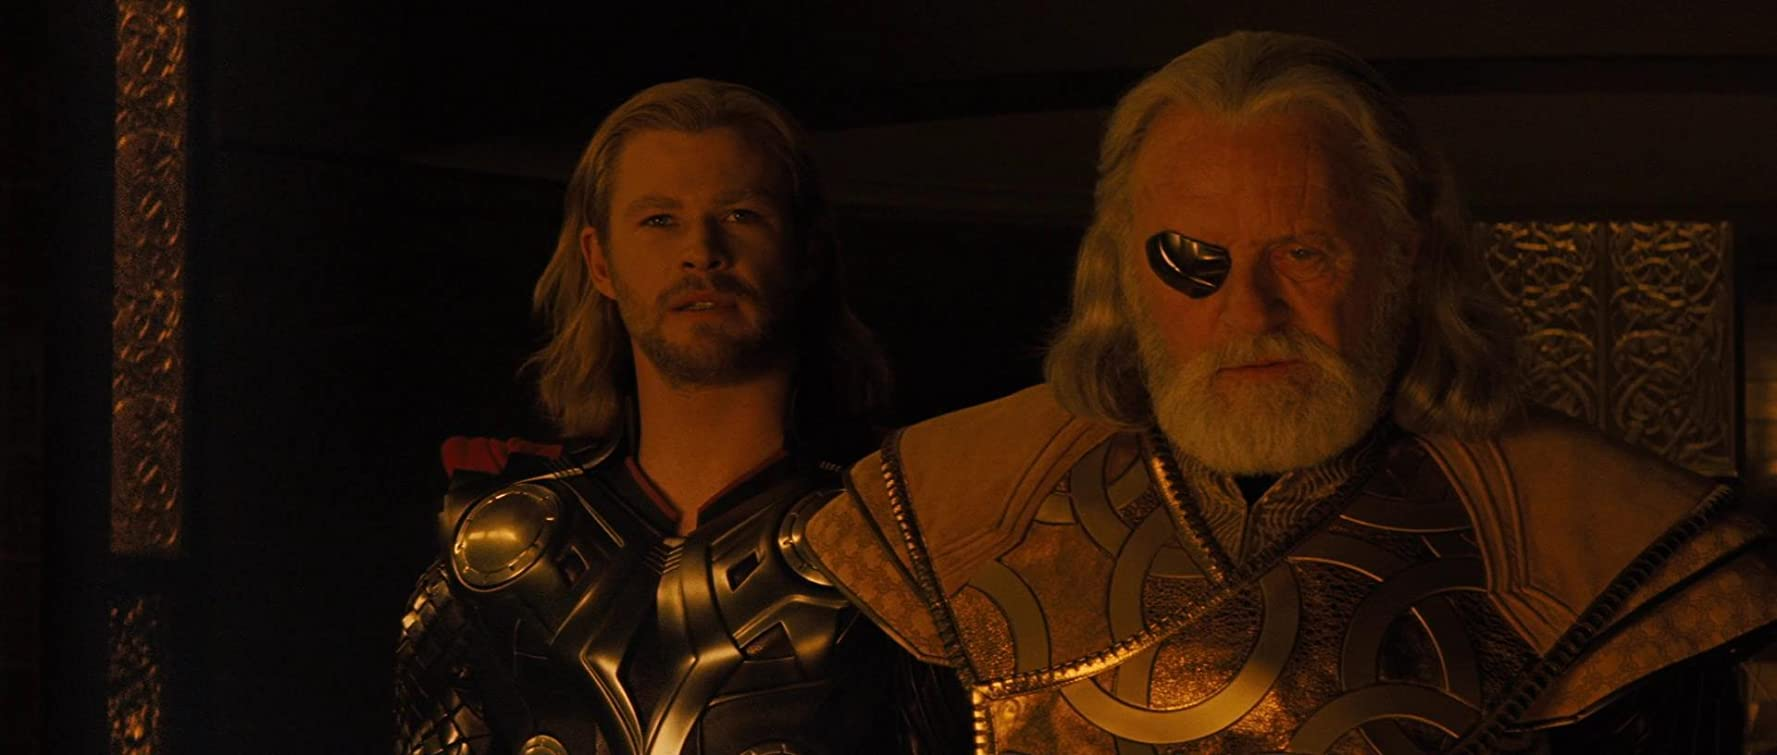 Anthony Hopkins and Chris Hemsworth in Thor (2011)